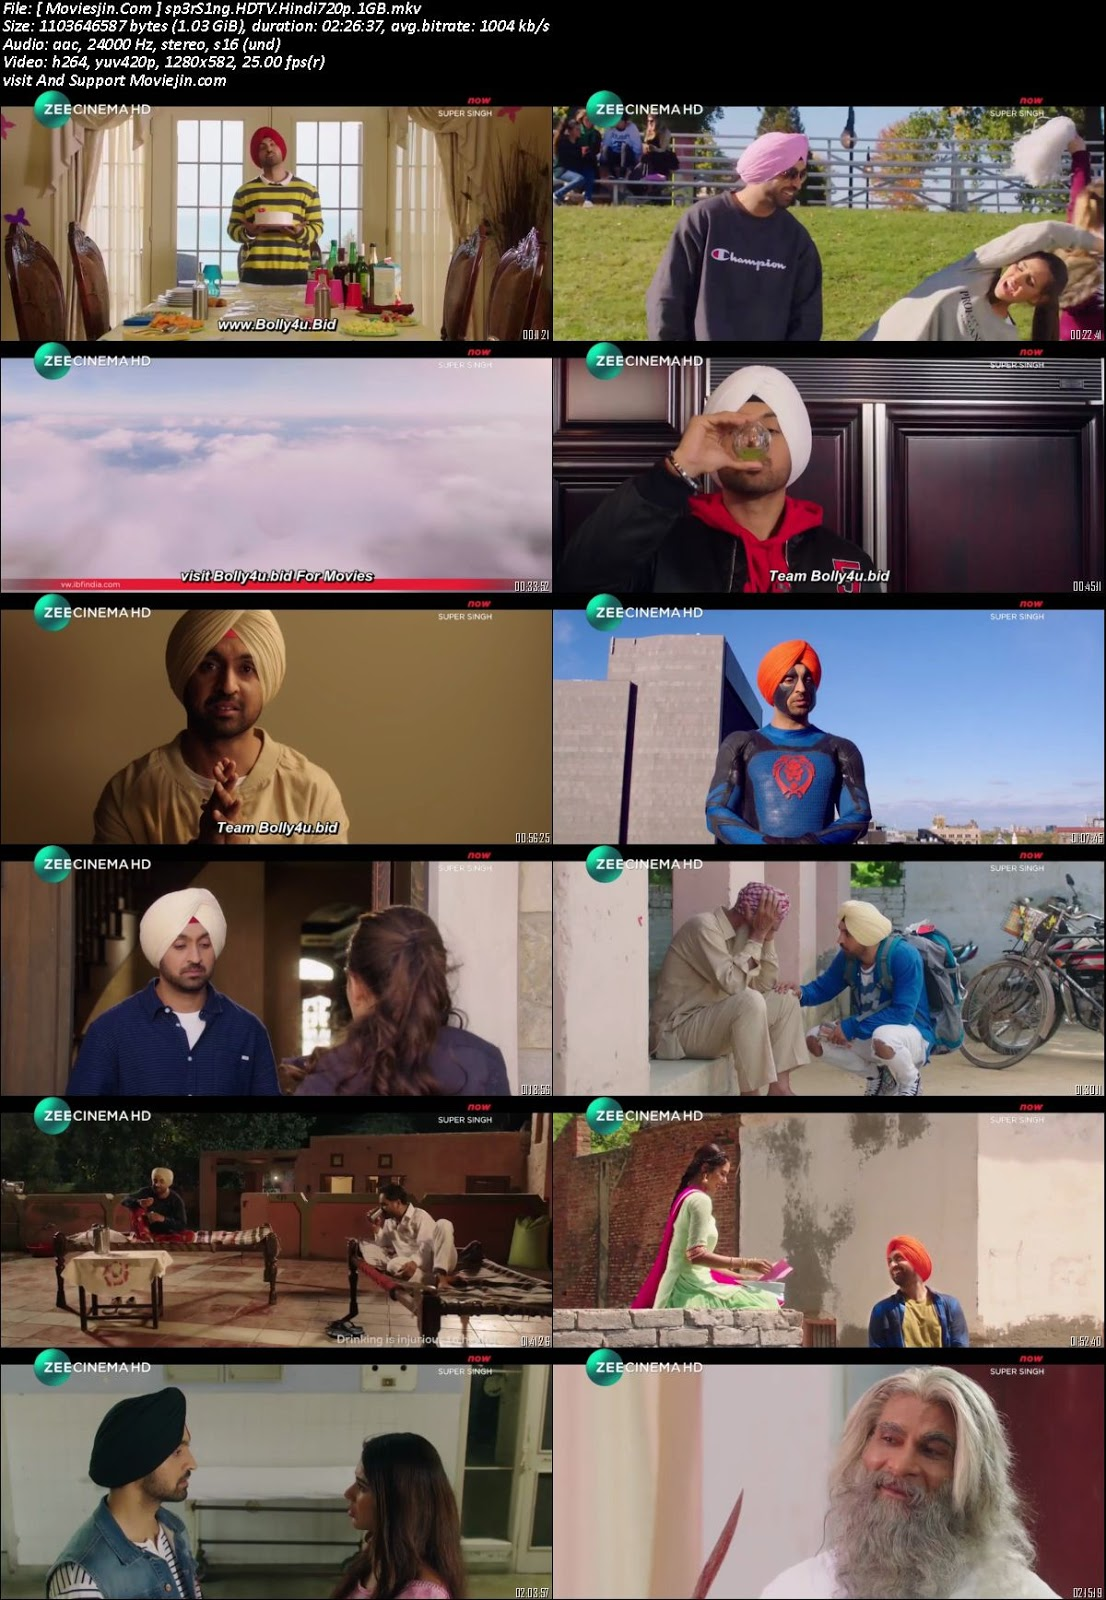 Watch Online Super Singh 2018 Full Movie HDTV Download 720p Full Movie Download Khatrimaza, free download 9xmovies,